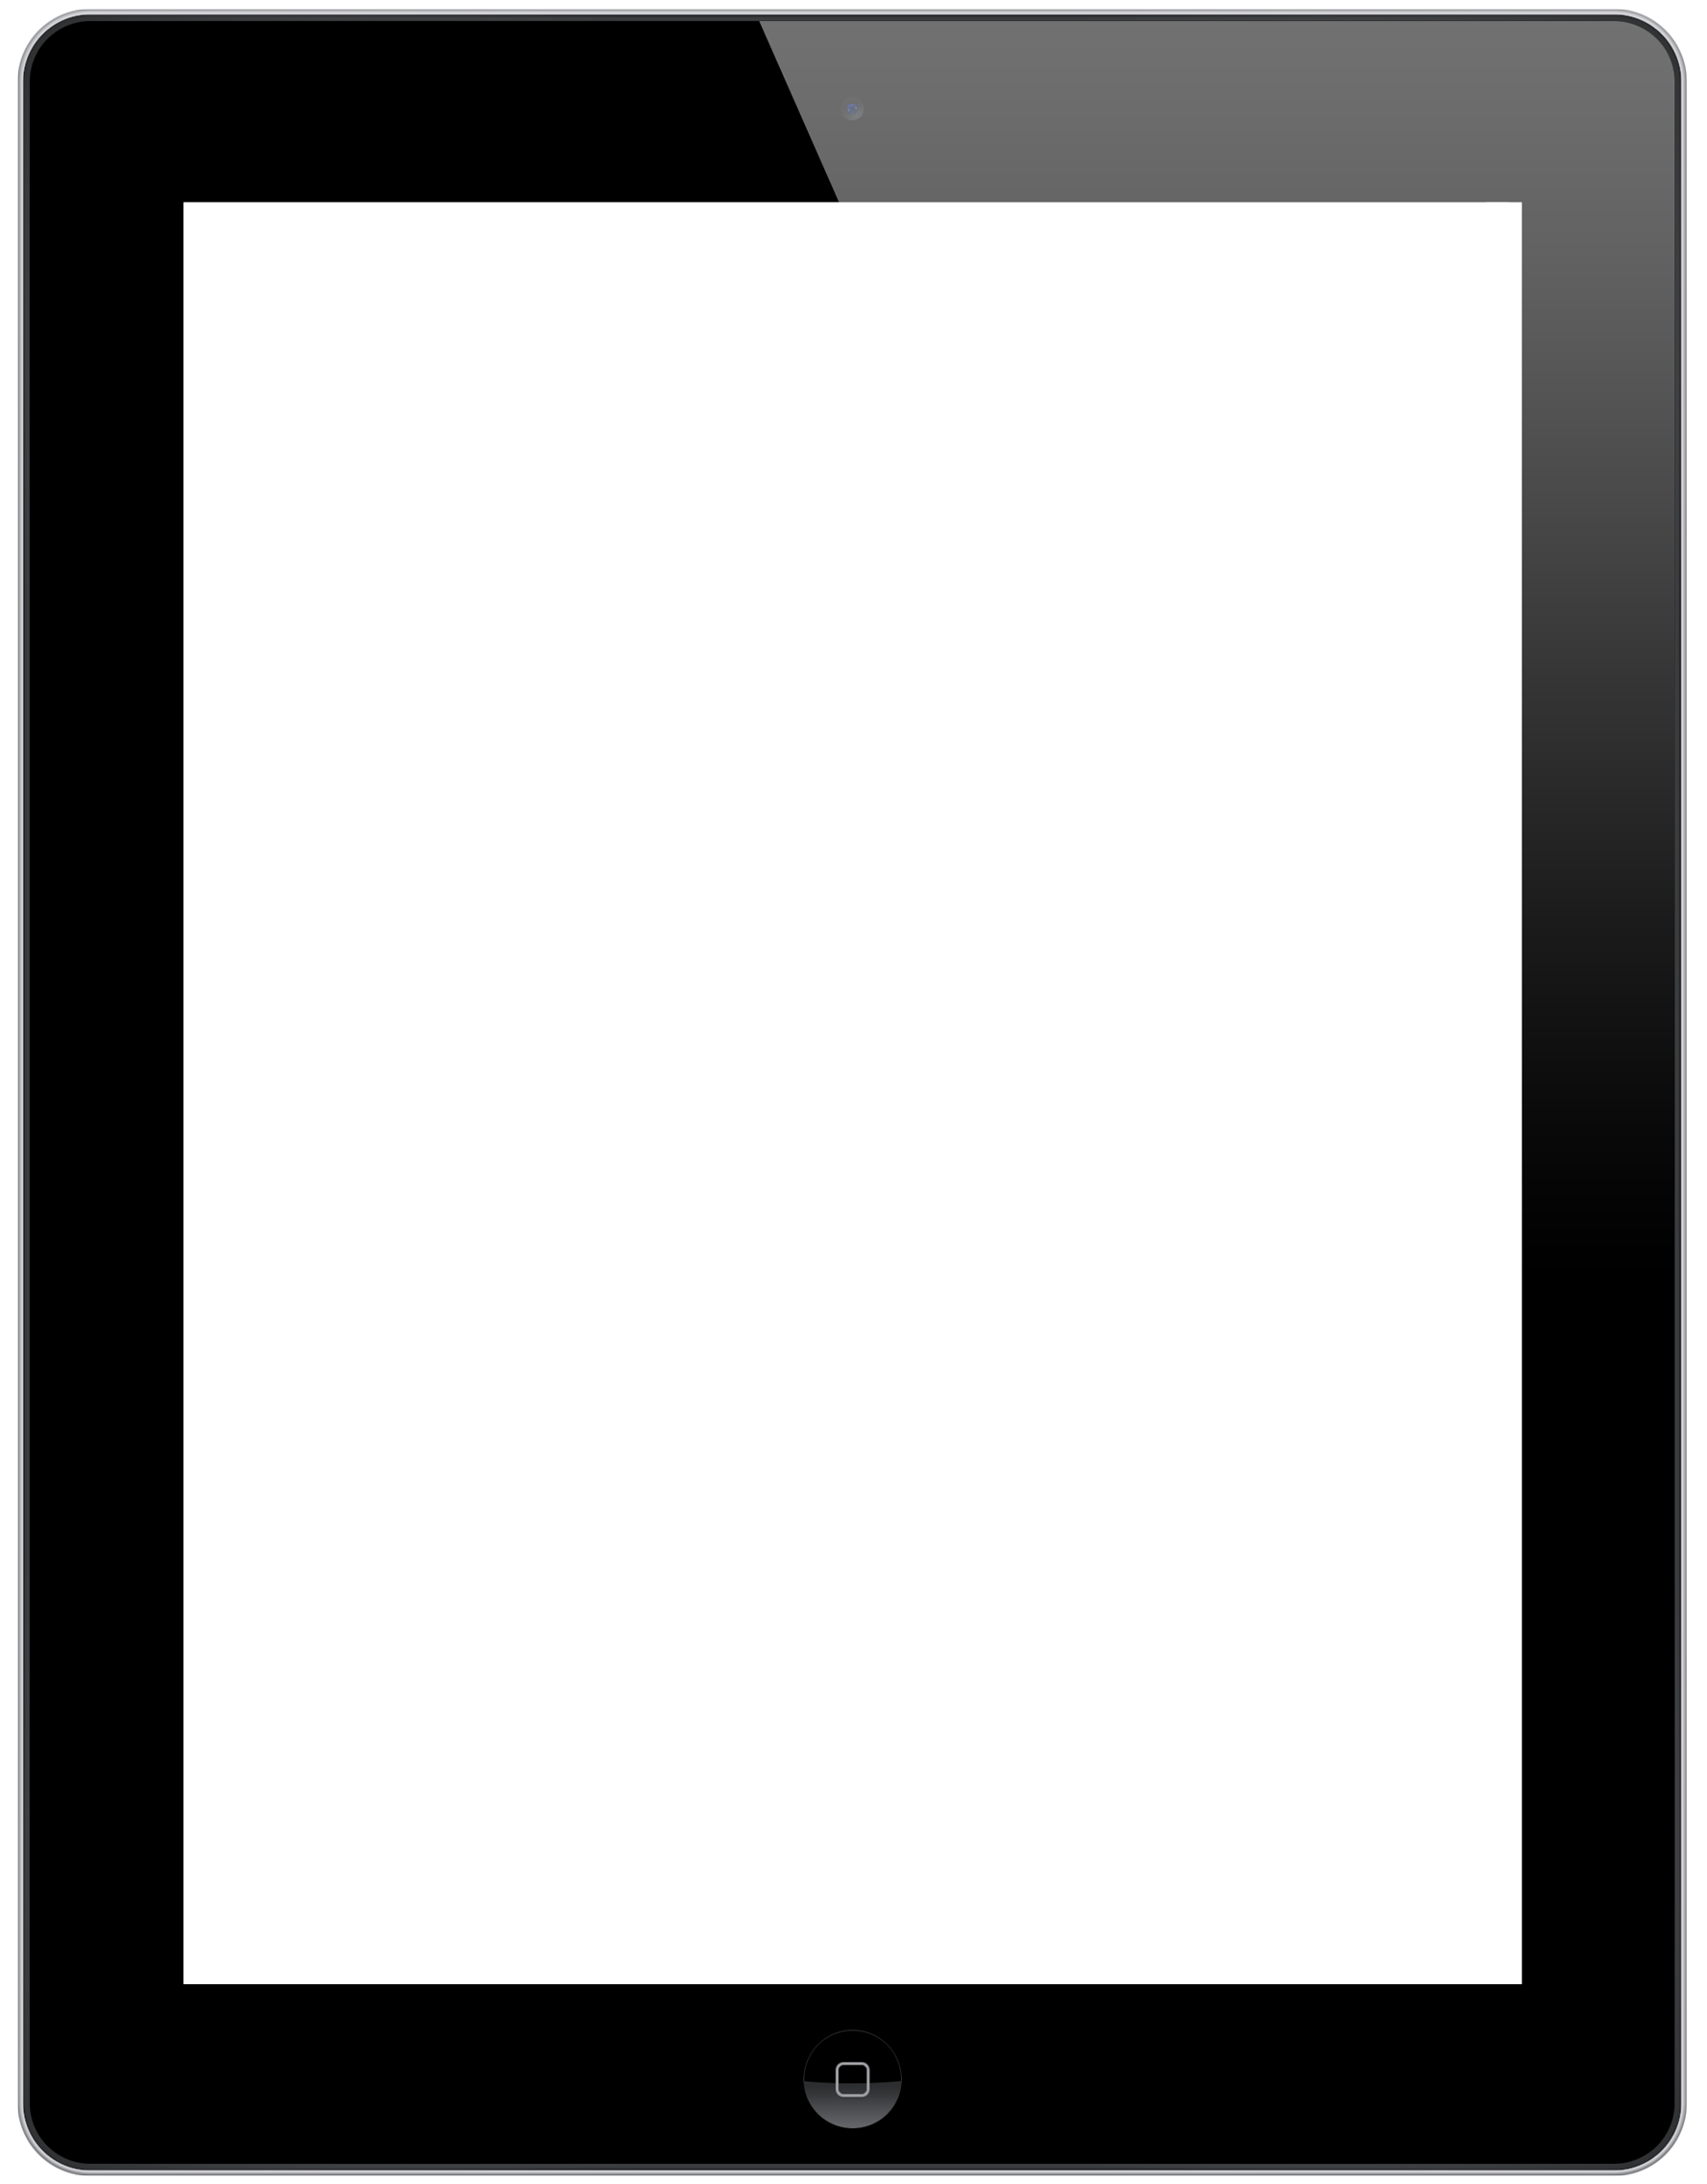 Ipad png. Images transparent free download